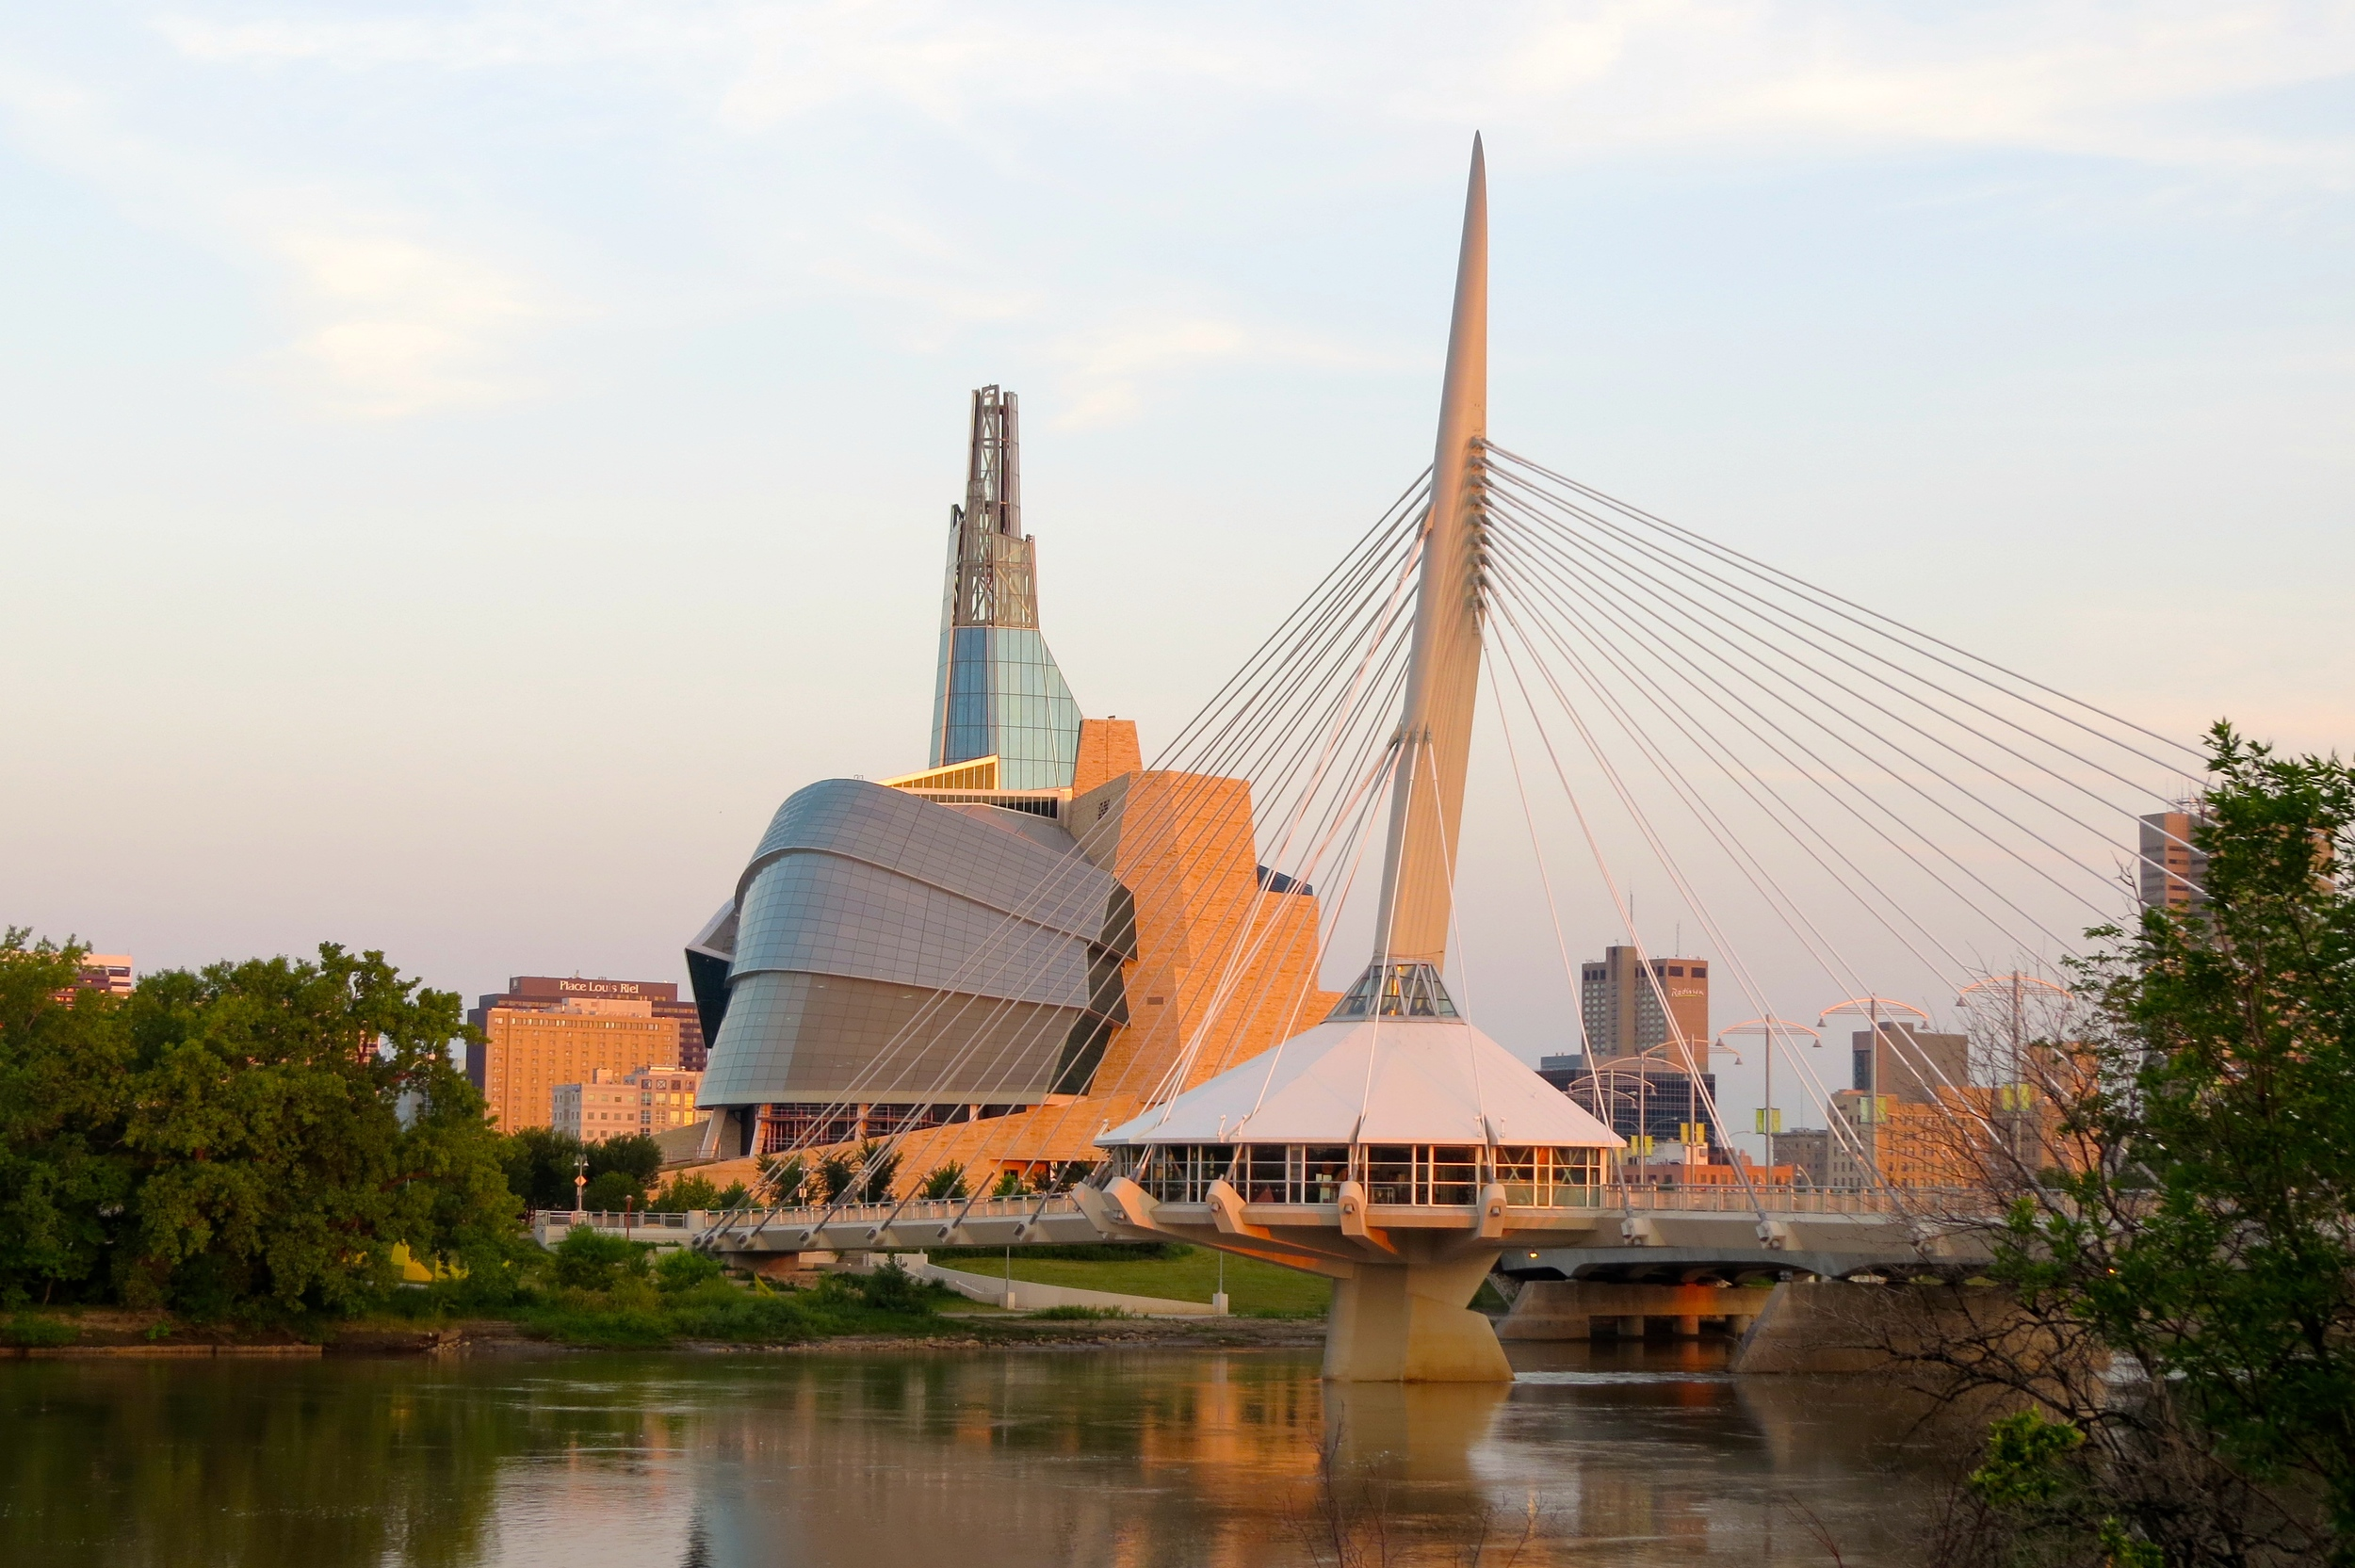 You bet! Here's a picture of Winnipeg to prove it. Pretty sweet. Right?